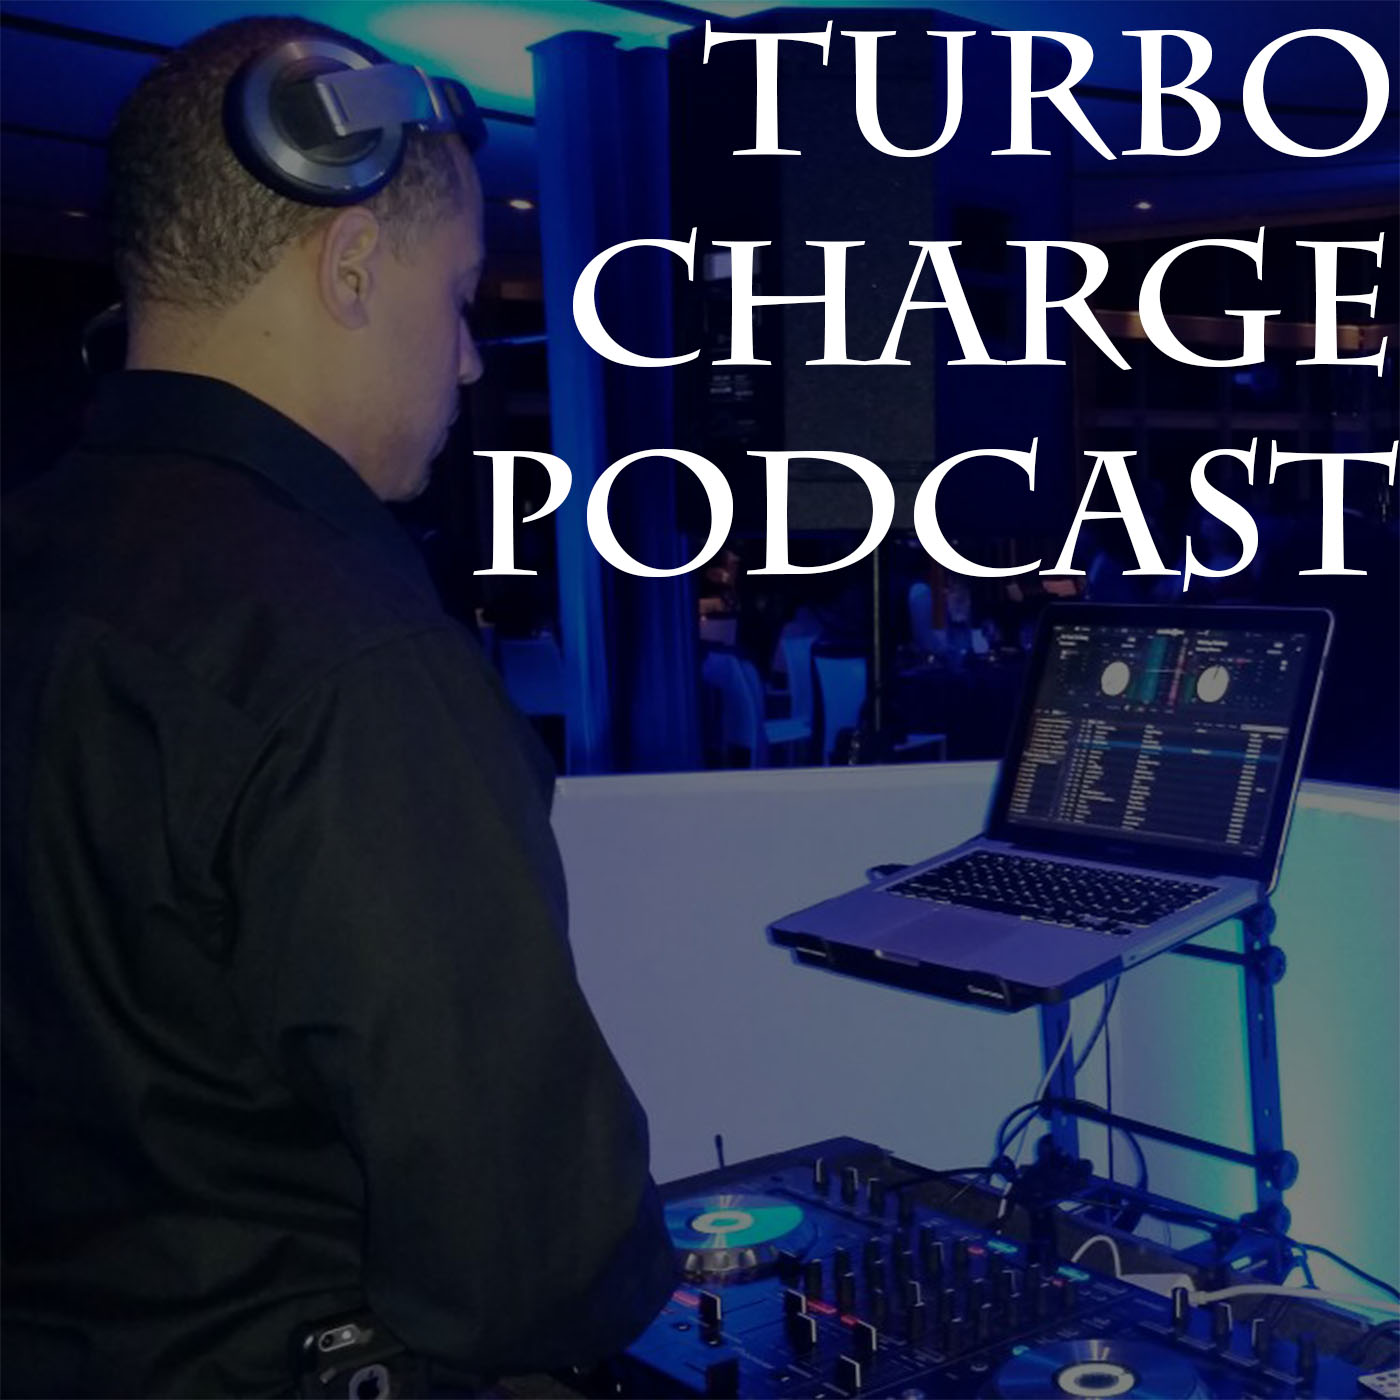 The Turbo Charge Podcast